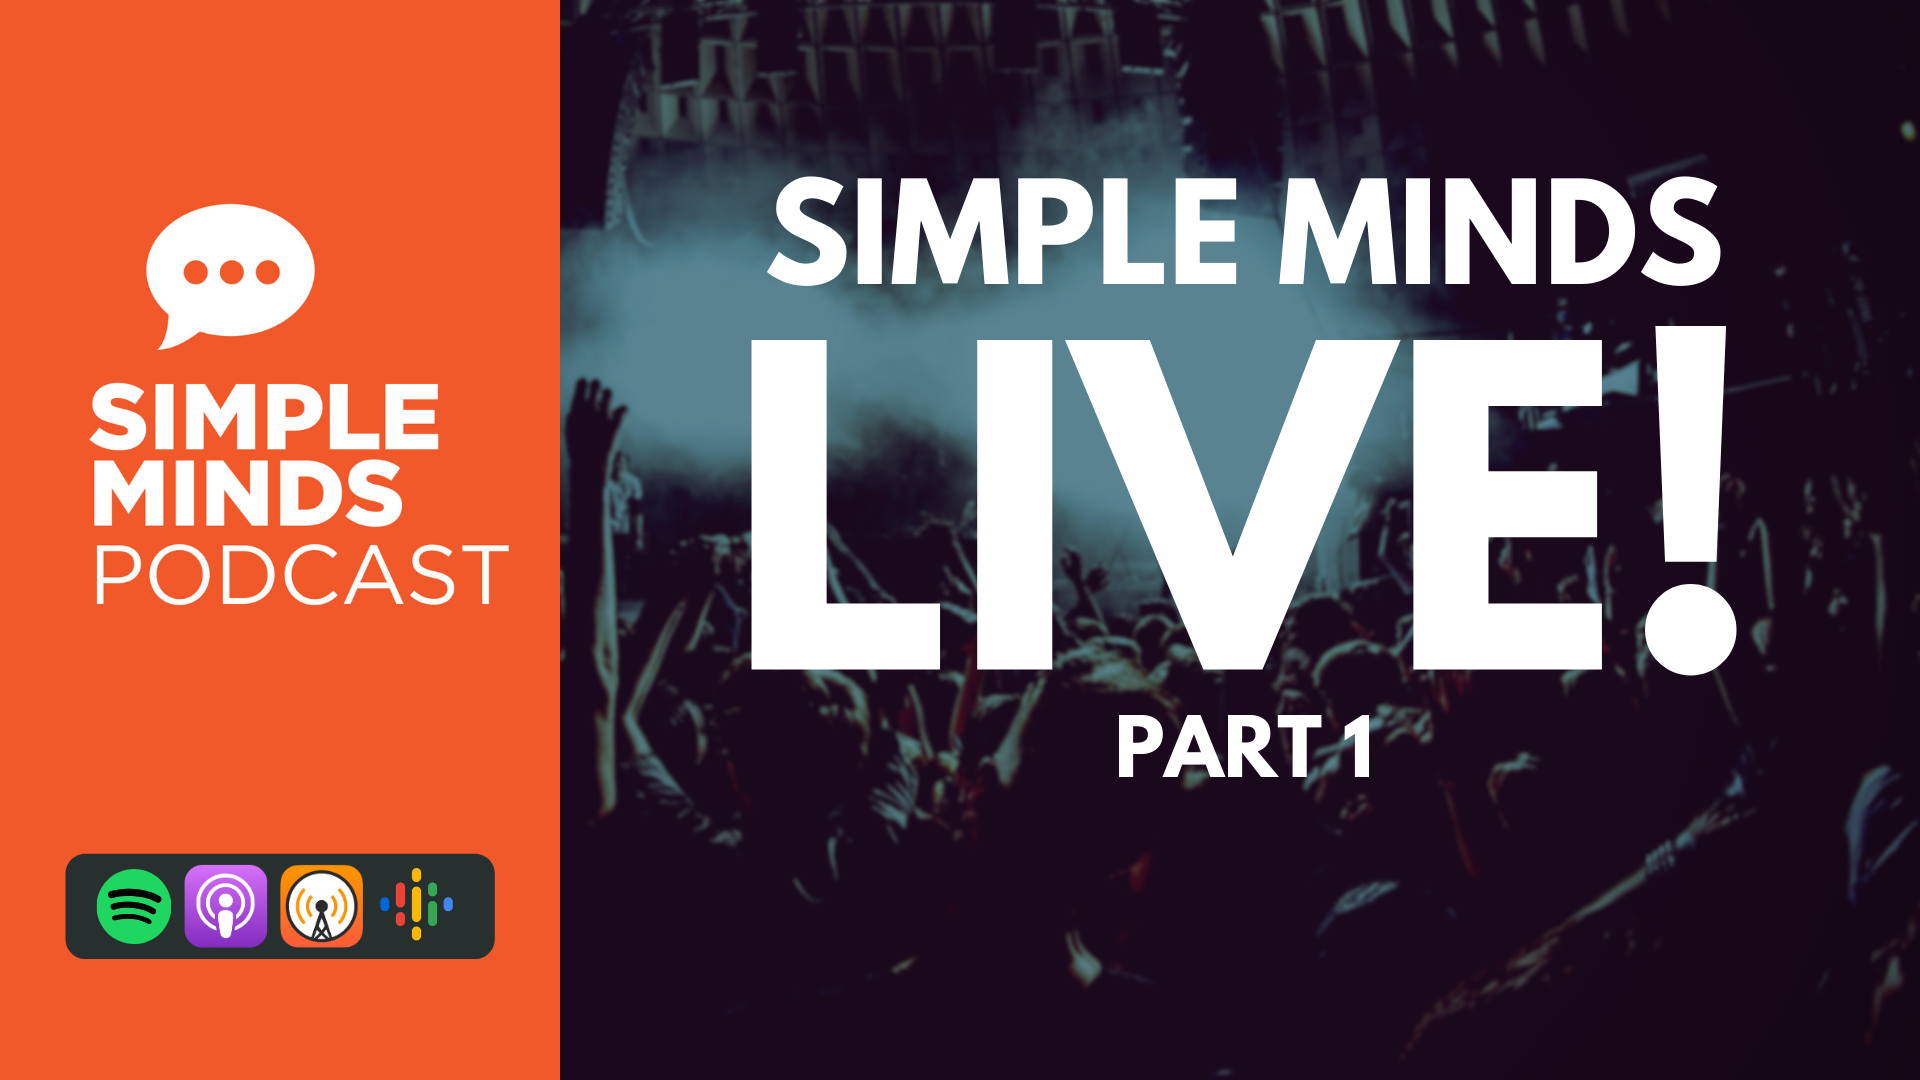 Simple Minds Podcast Live! Part 1